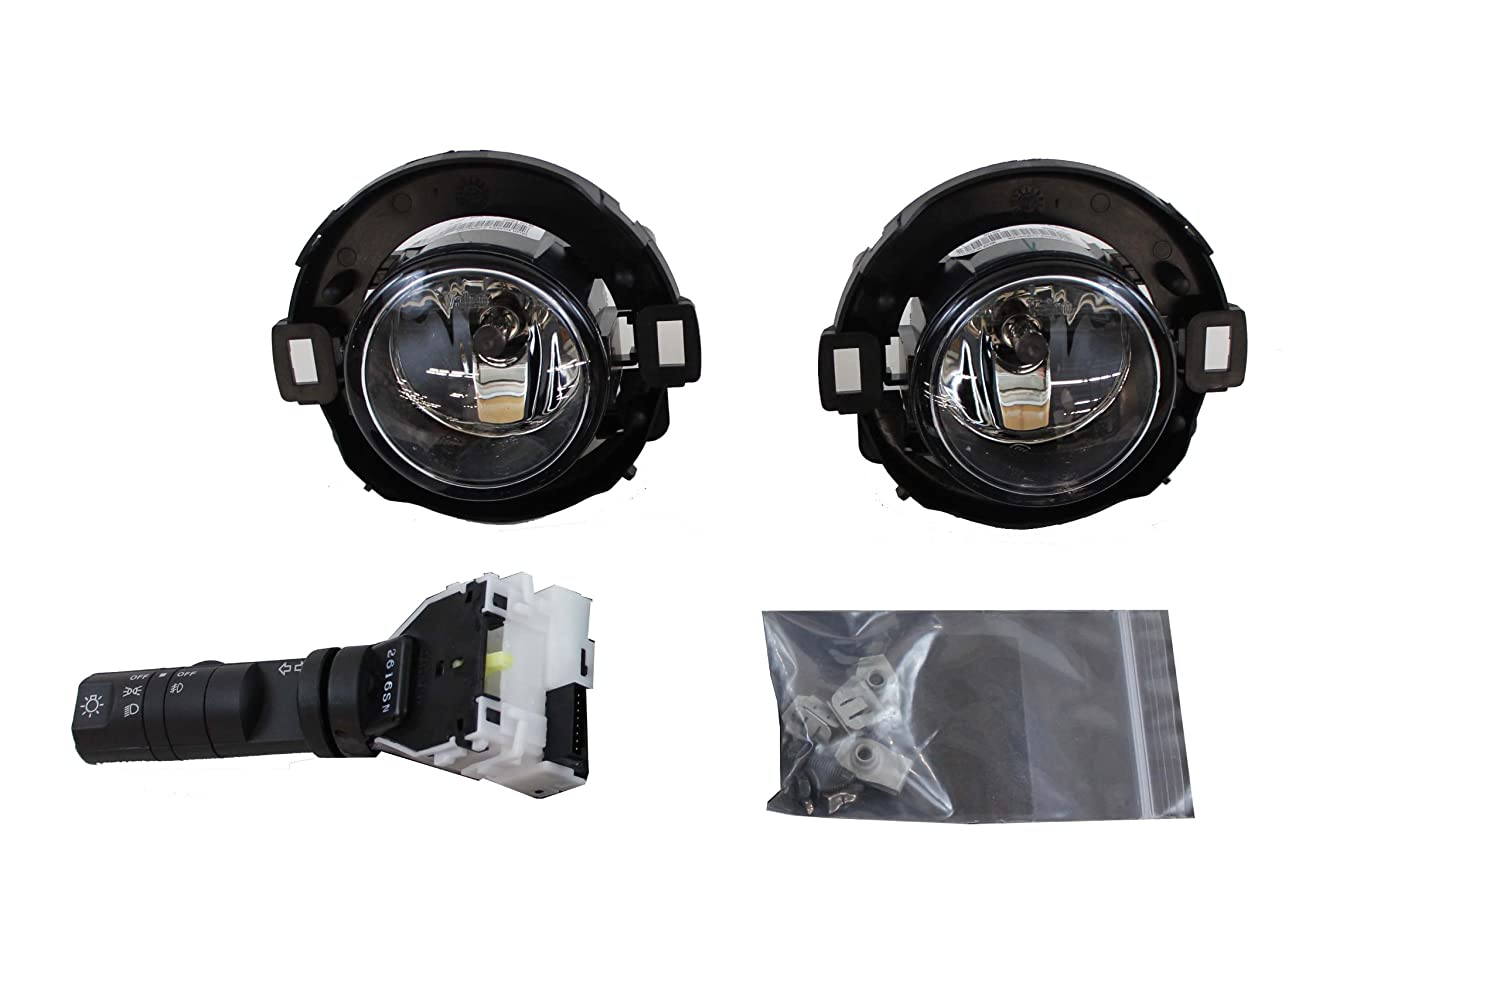 Thread How Do You Wire The Fog Lights Nissan Genuine Accessories 999f1 Kv000 Light For Plastic Bumper Automotive